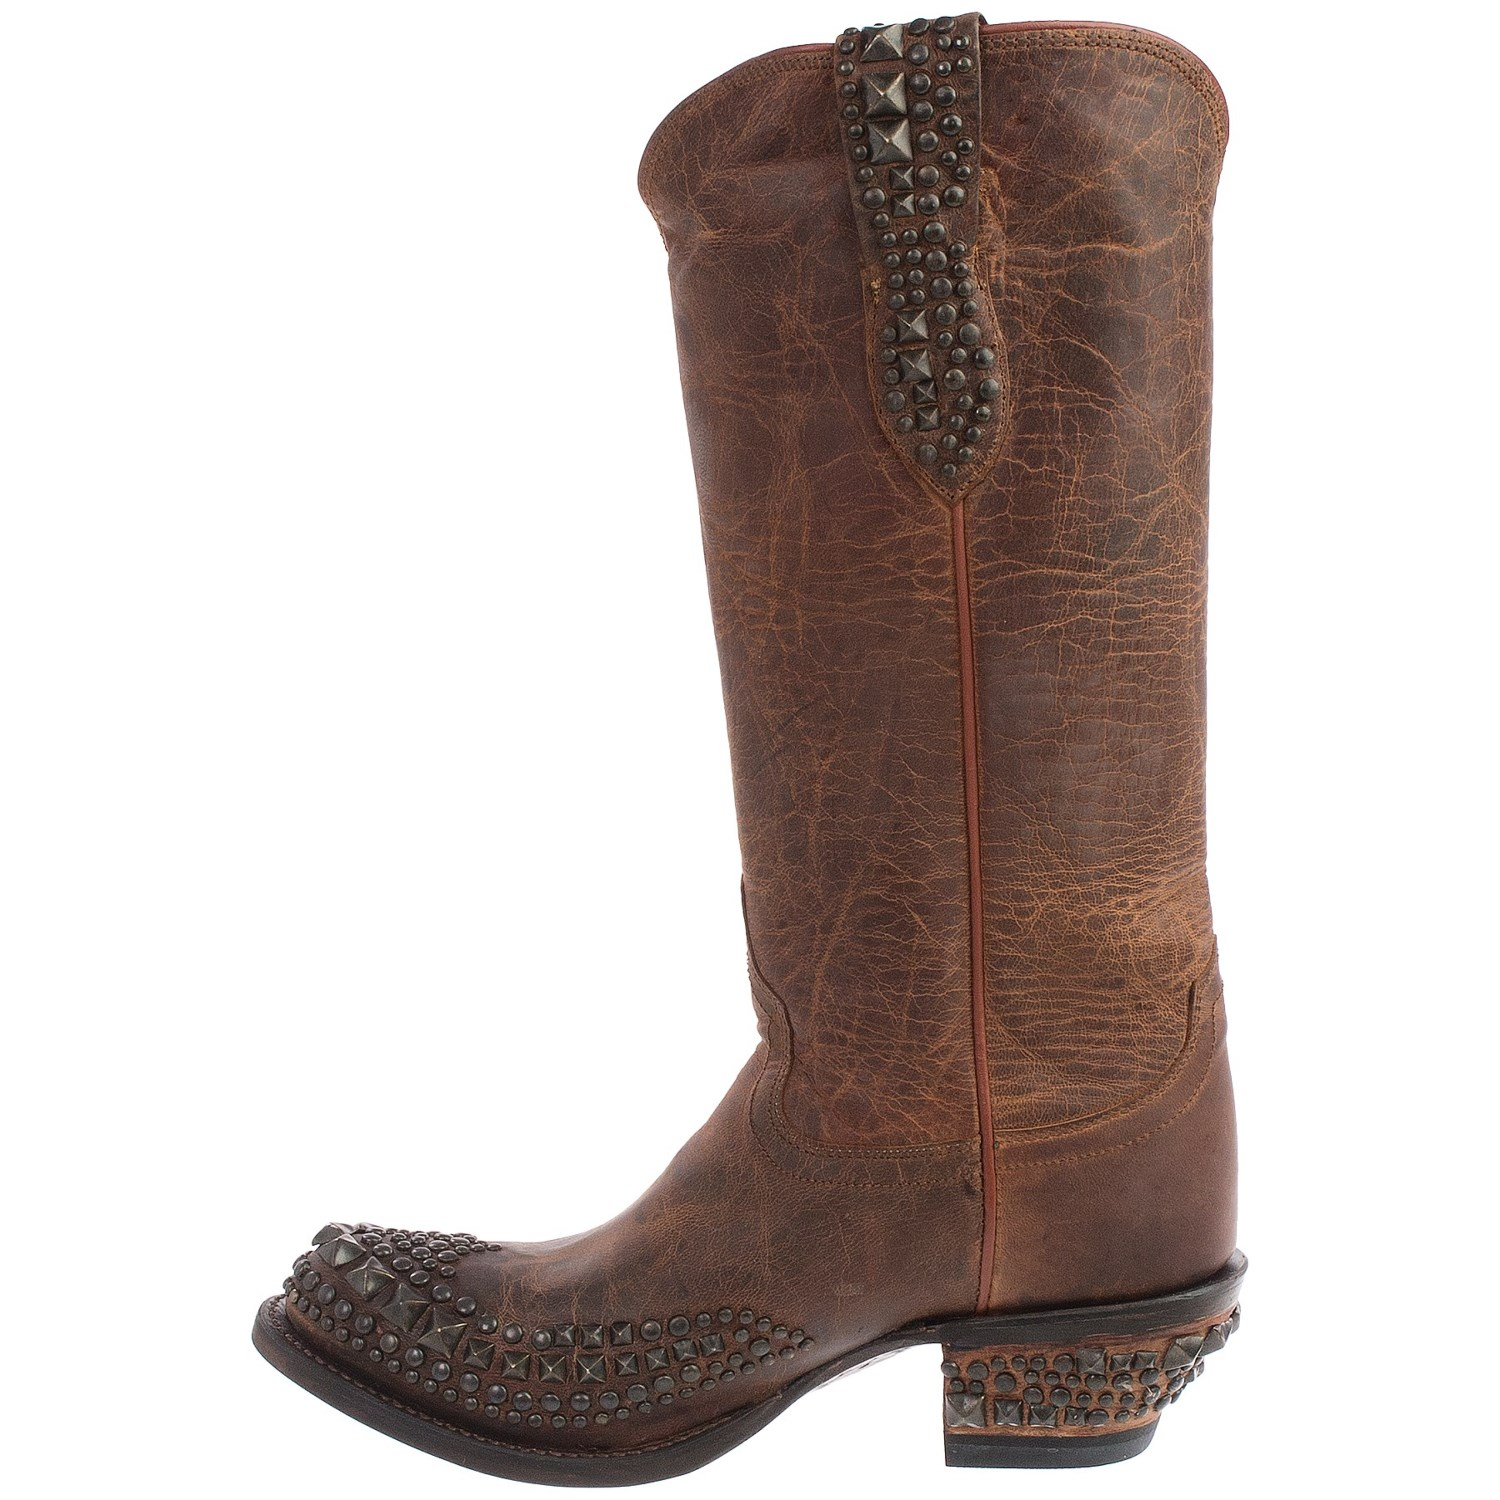 lucchese mens boots clearance - 28 images - lucchese